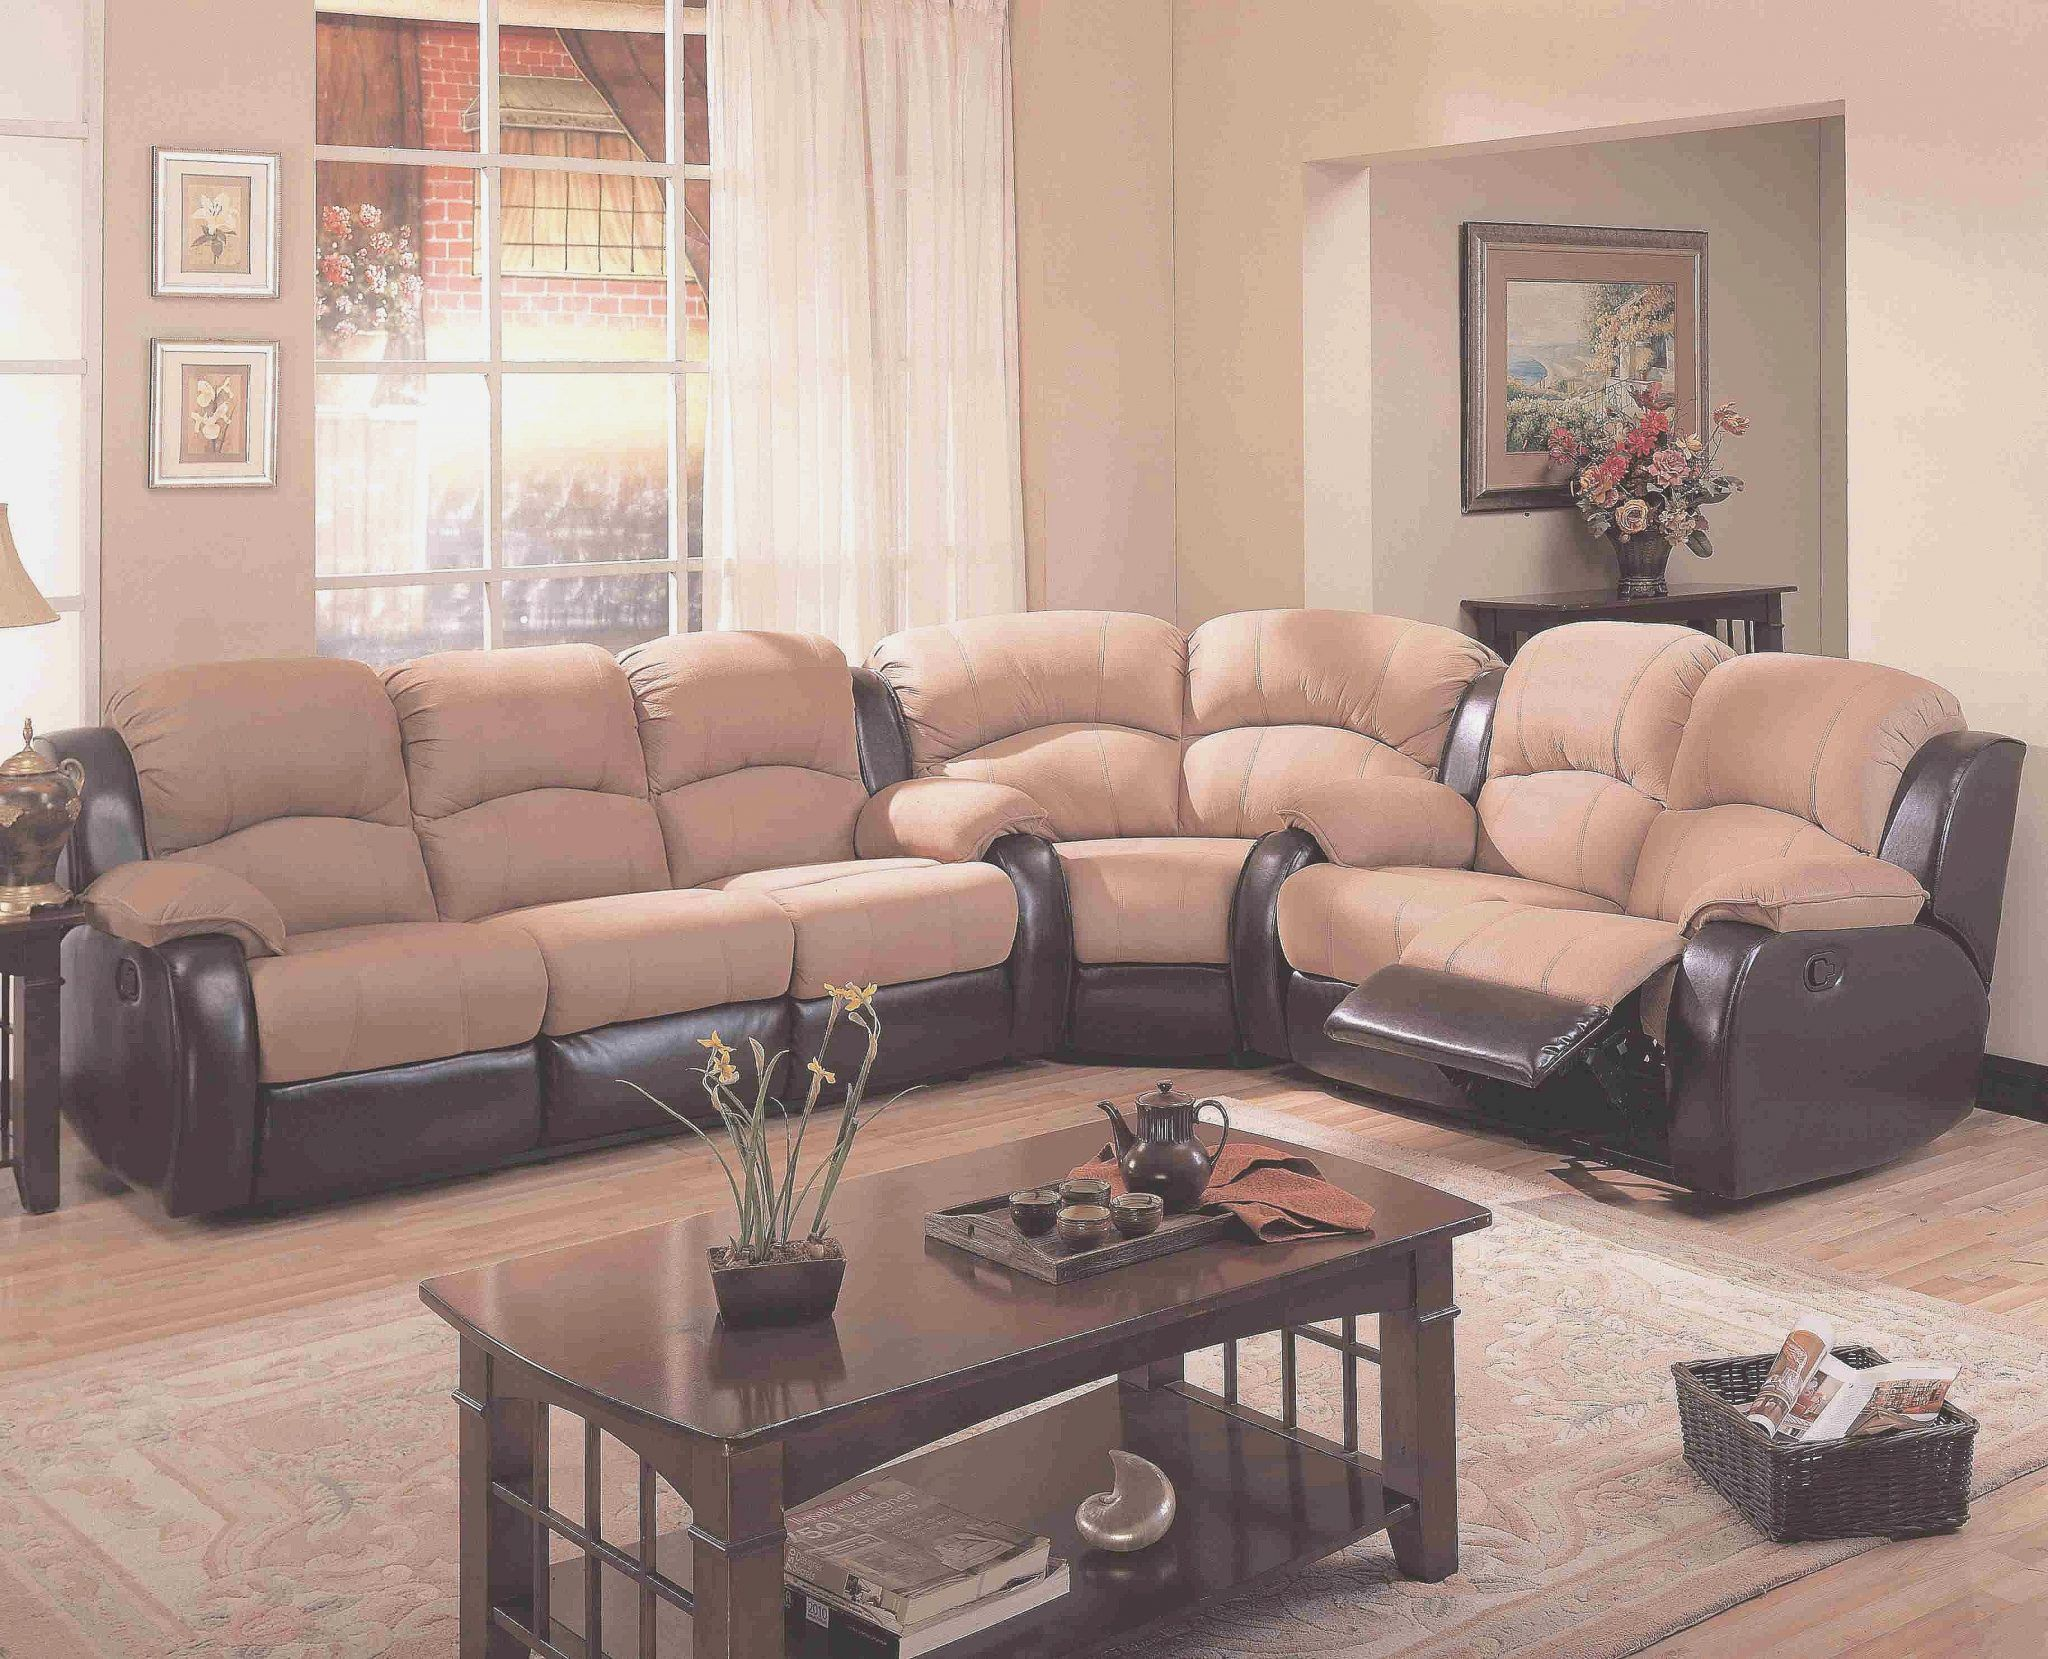 Cream Colored Sectional Sofa   Cream Colored Leather Sectional Sofa, Cream  Colored Sectional Sofa